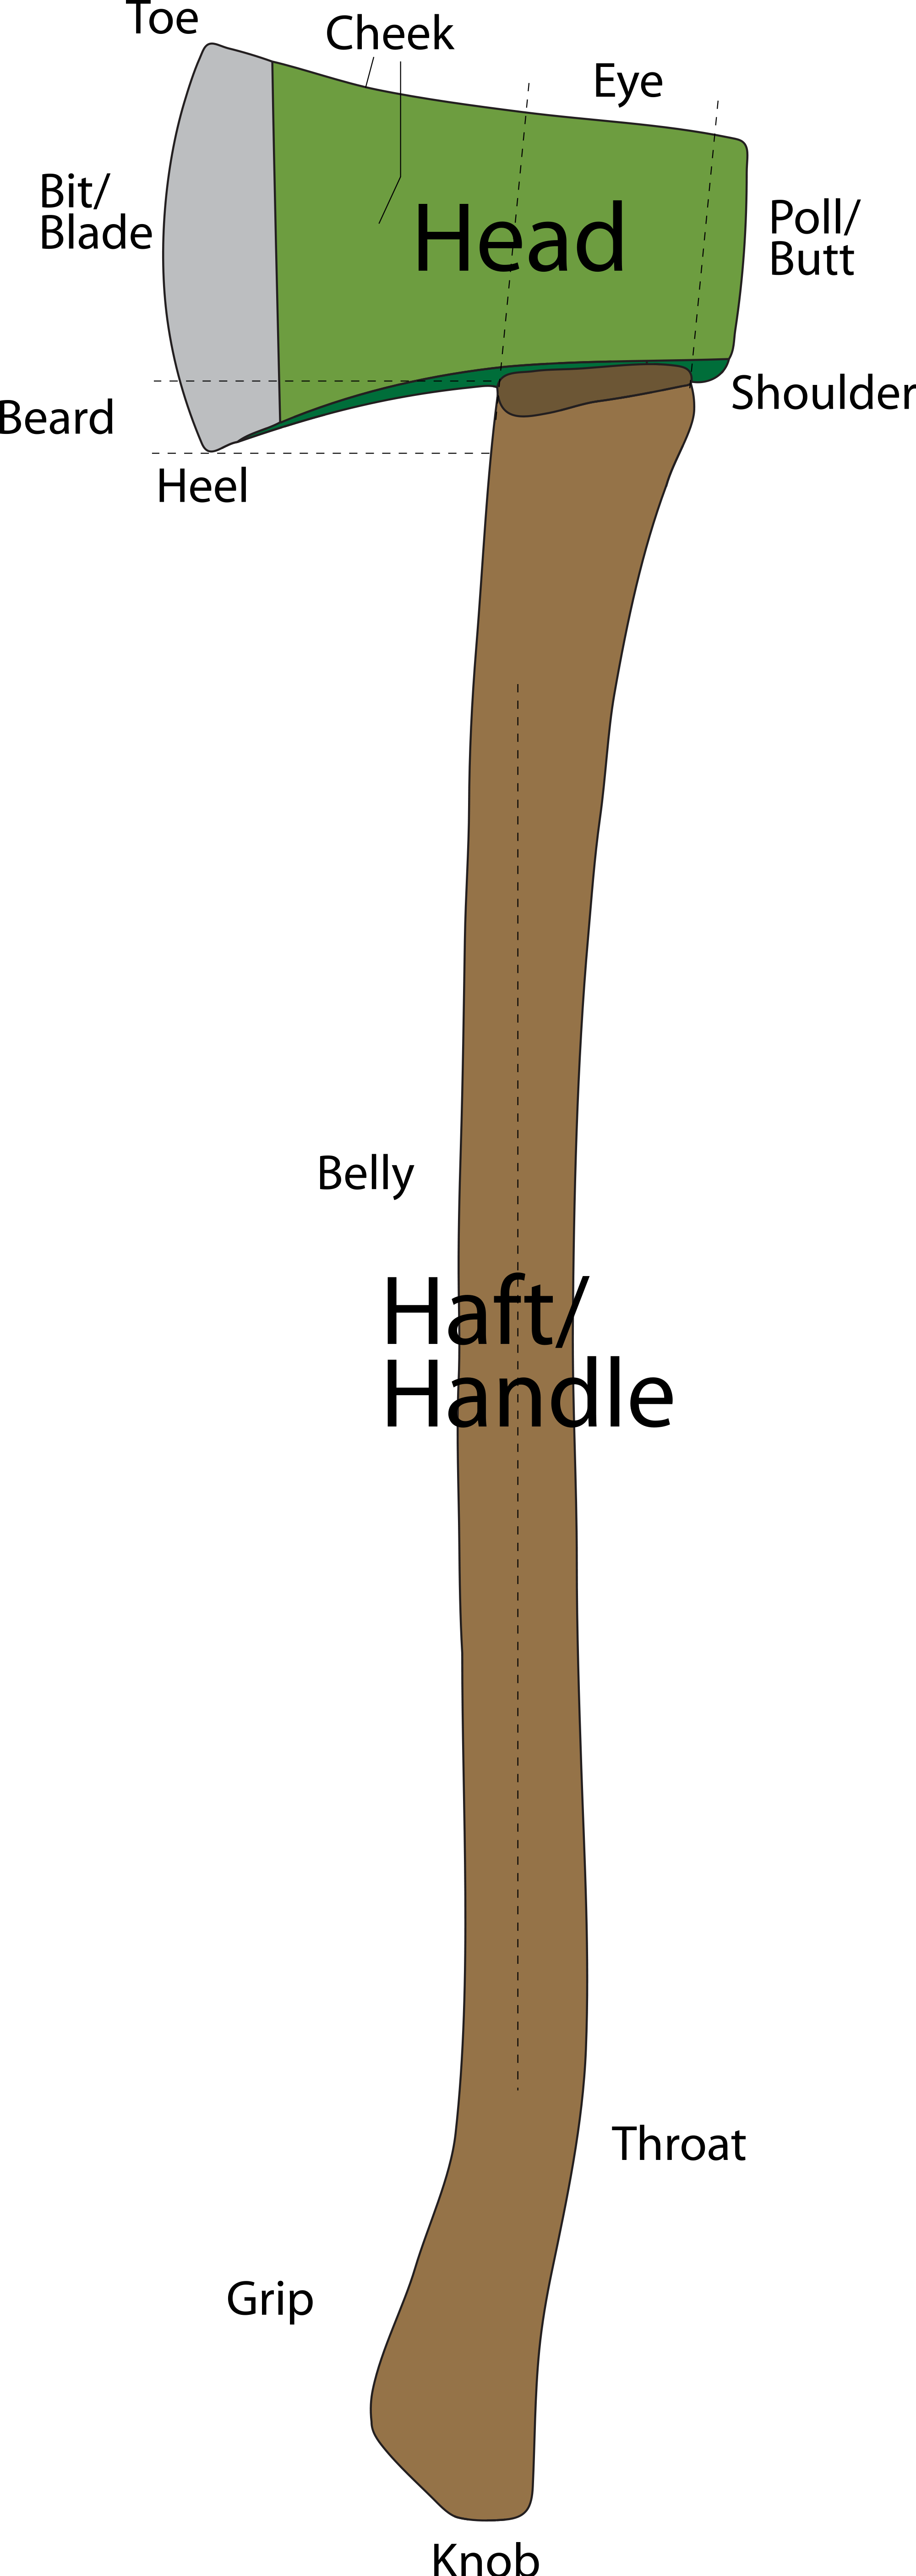 Ax drawing wedge. Axe wikipedia a diagram